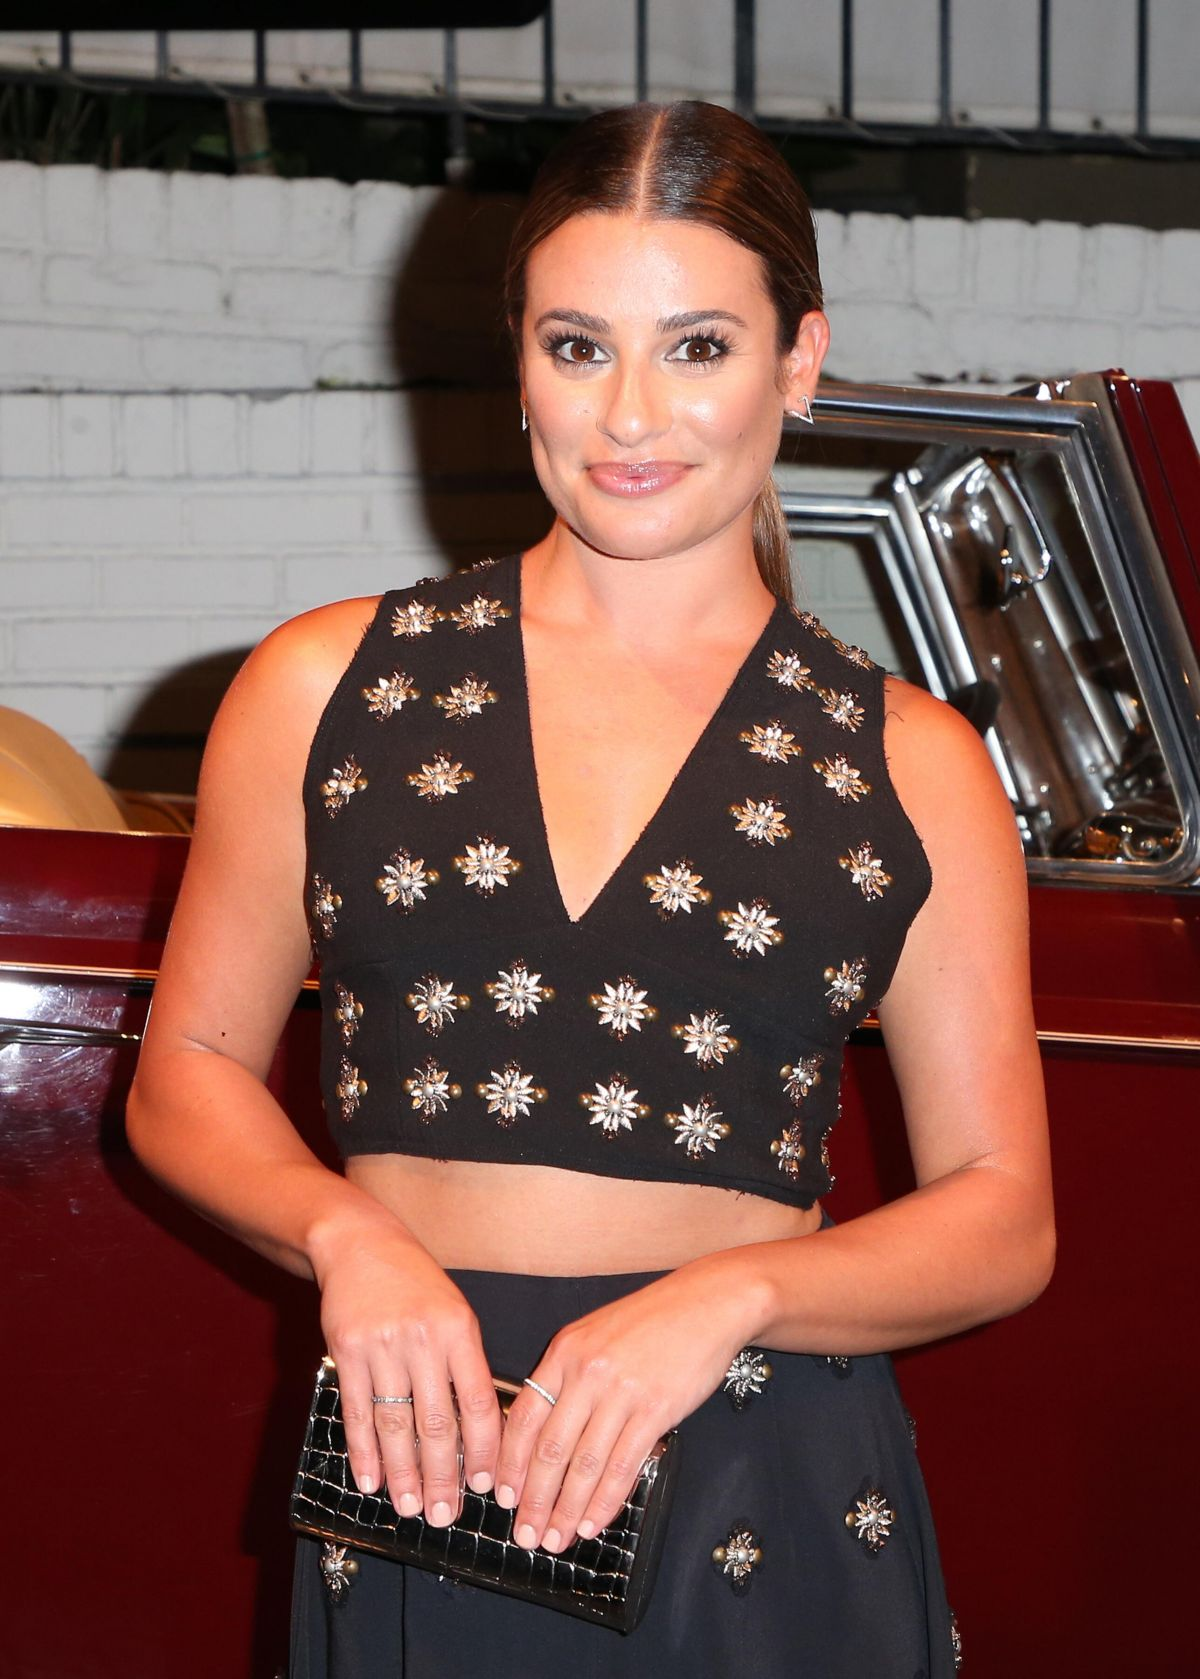 LEA MICHELE at The Last Tycoon After Party in Los Angeles 07/27/2017